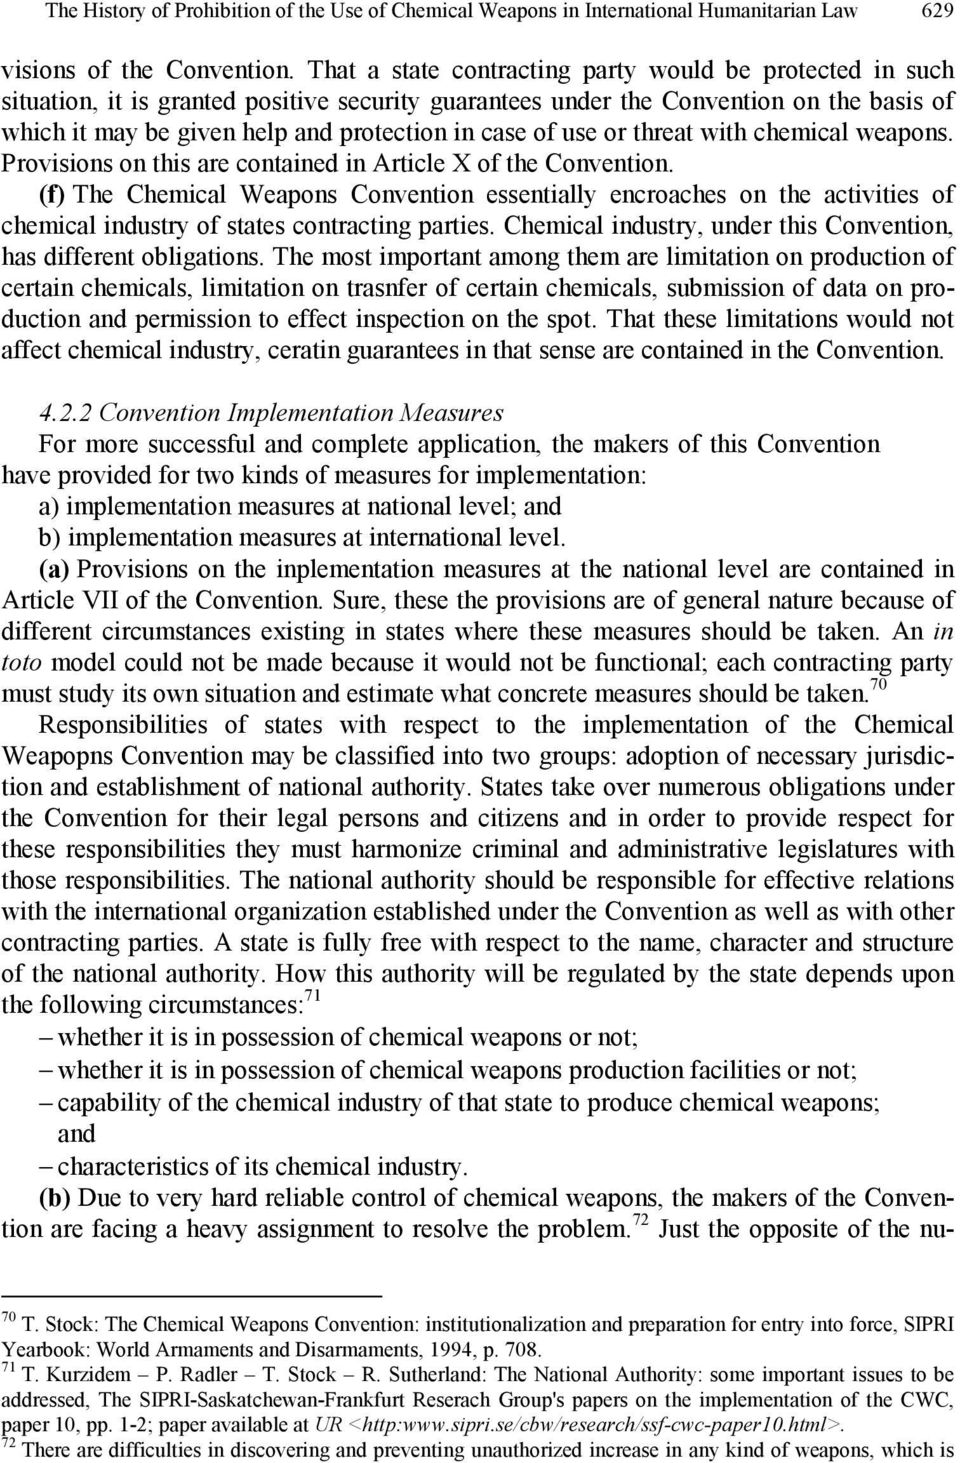 of use or threat with chemical weapons. Provisions on this are contained in Article X of the Convention.